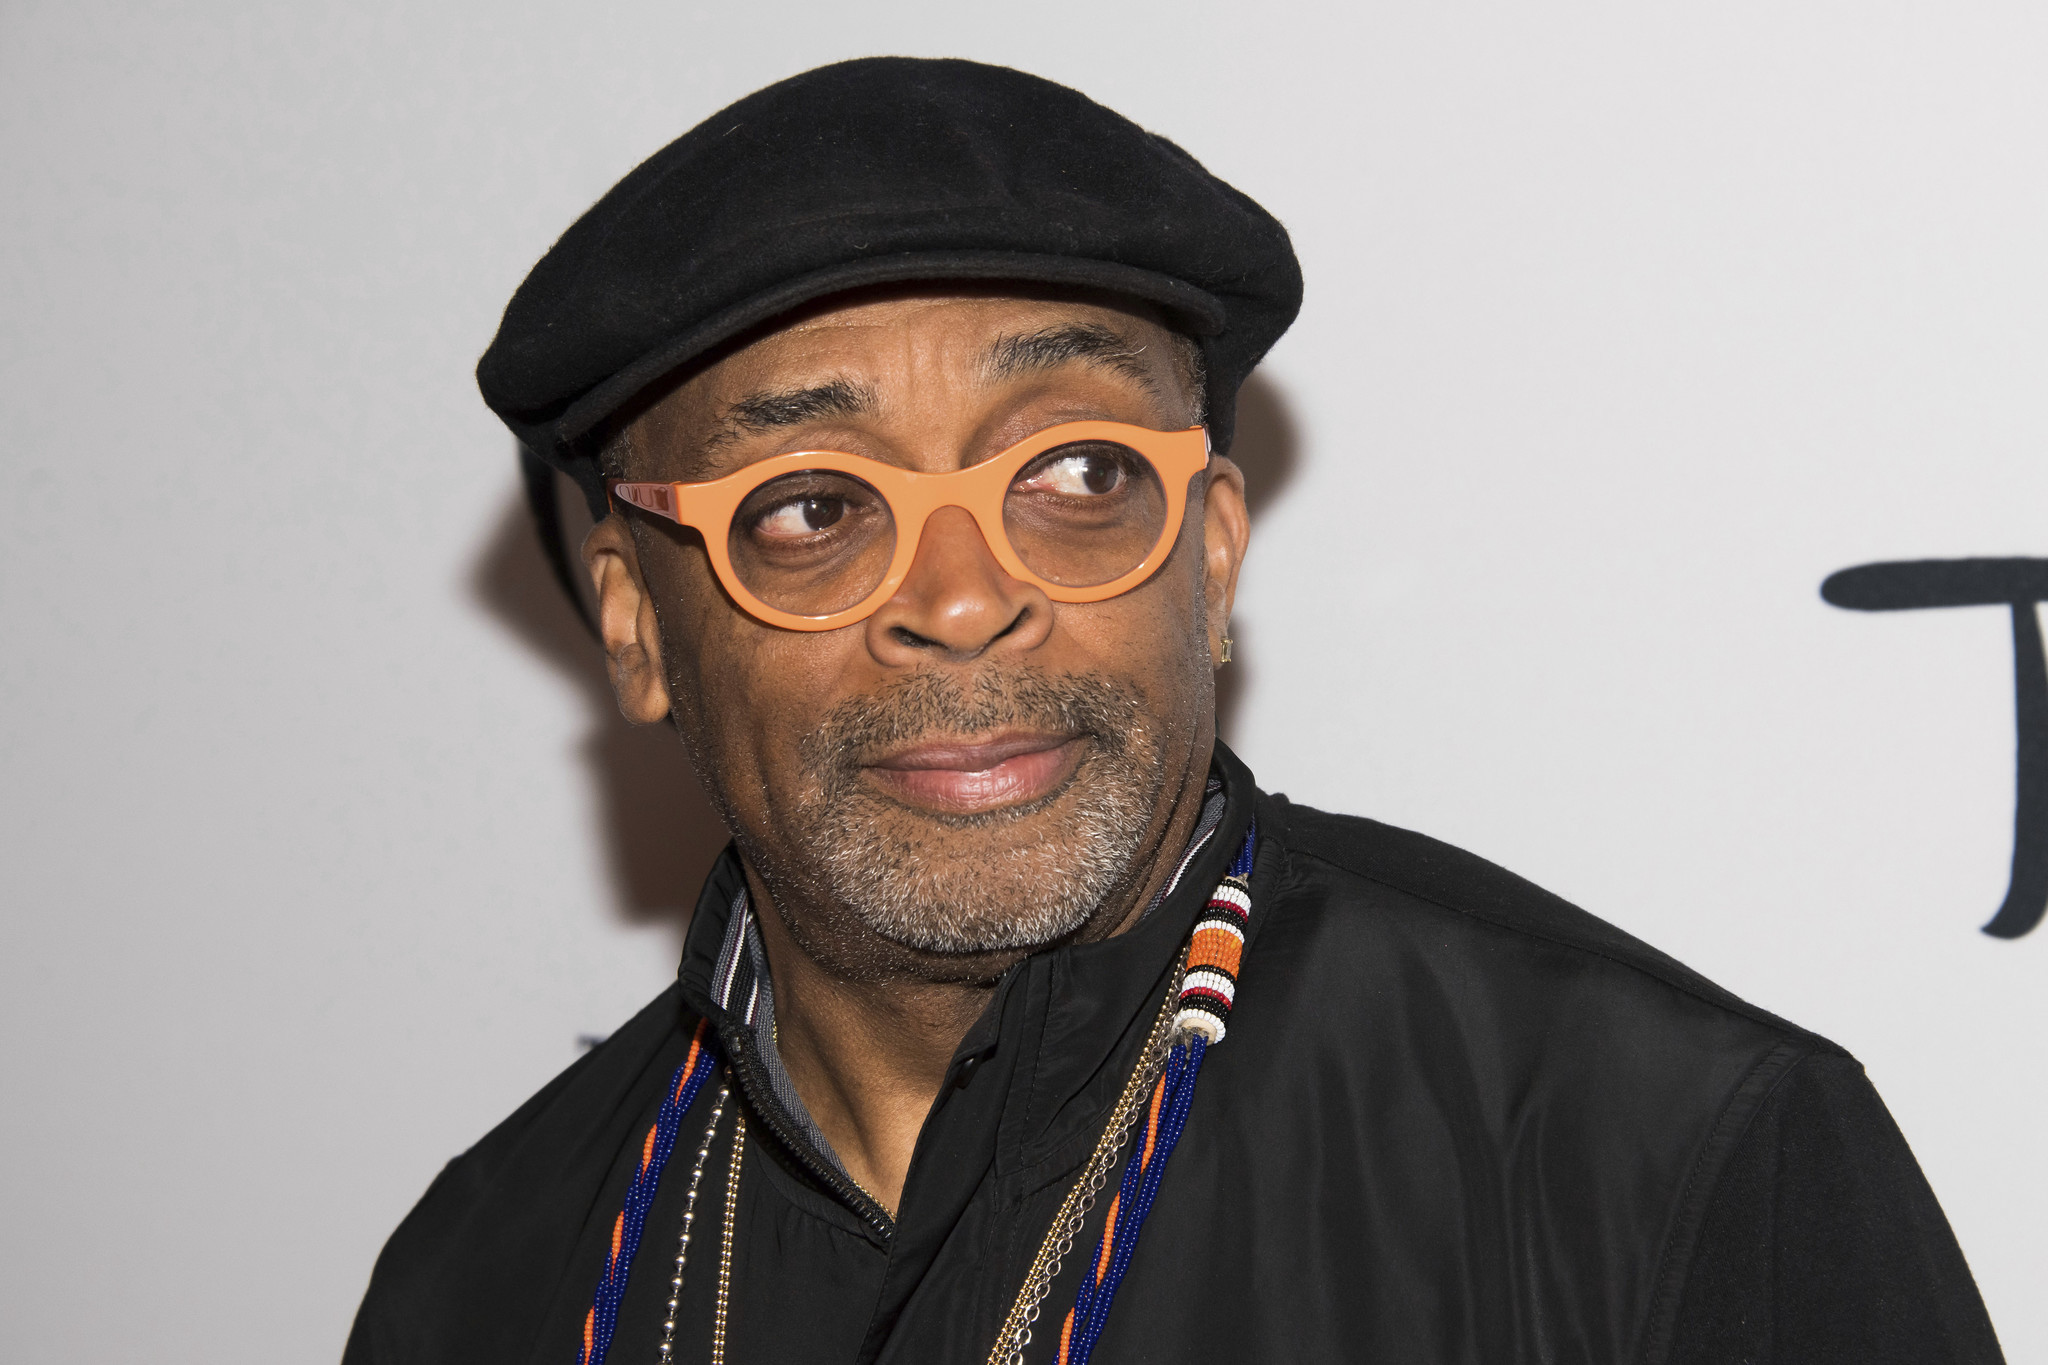 Spike Lee to become first black person to lead the Cannes Film Festival jury